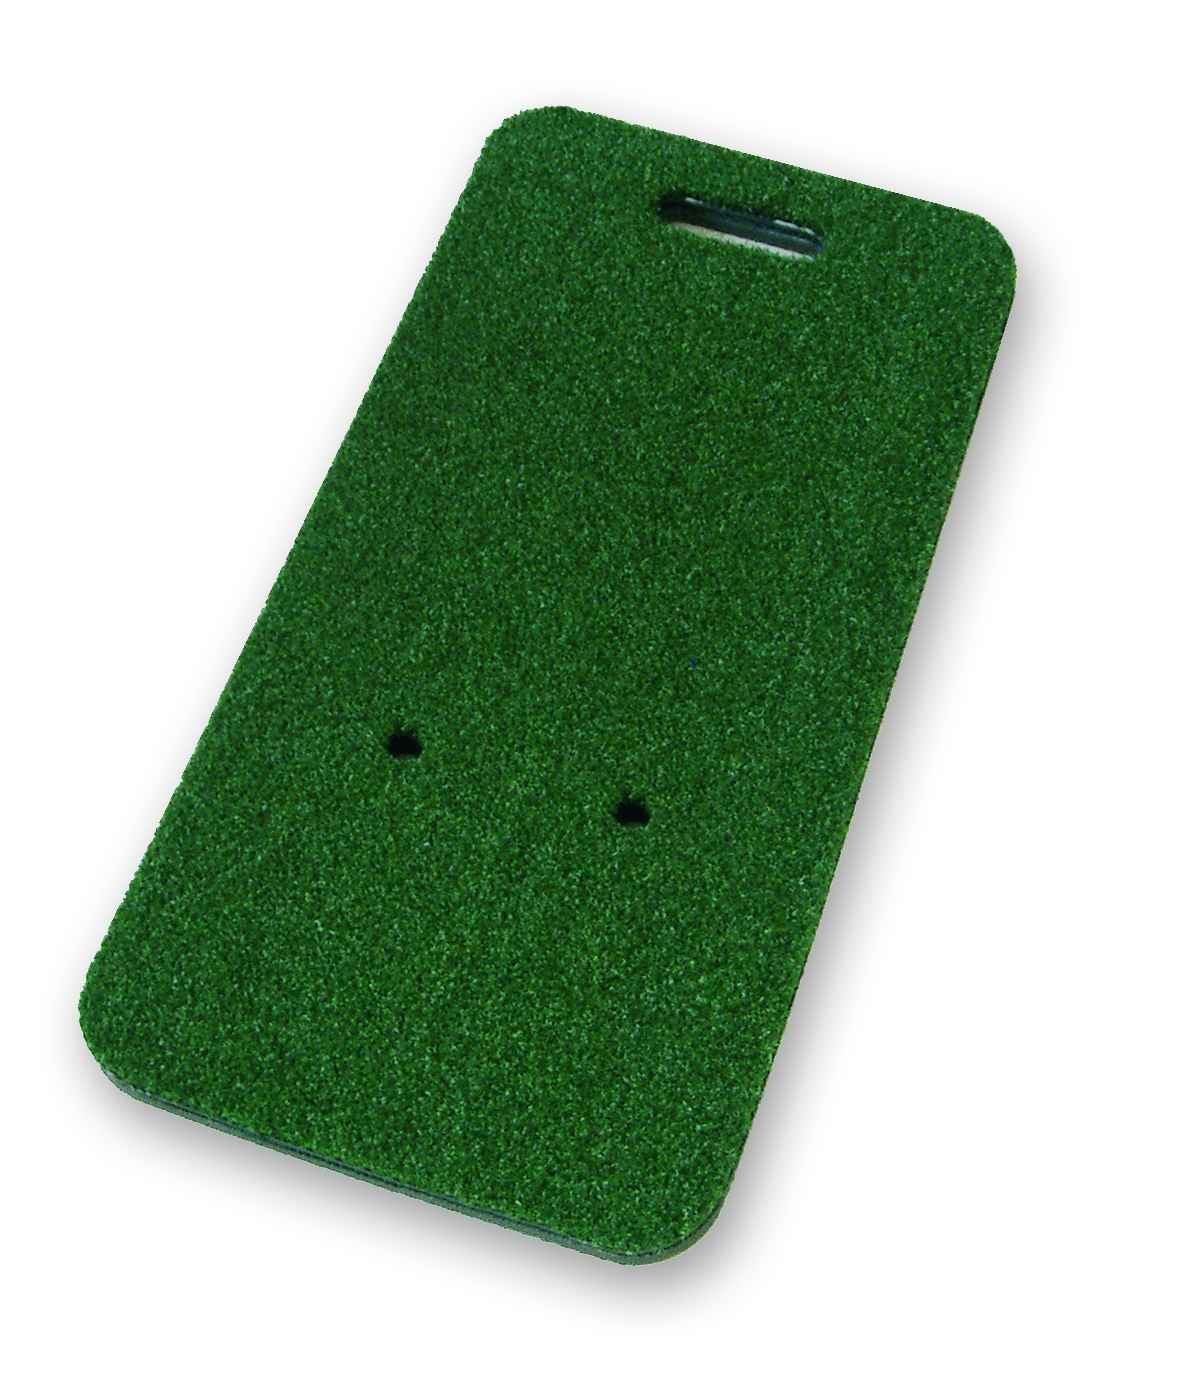 Astroturf Rugs  Feel The Home